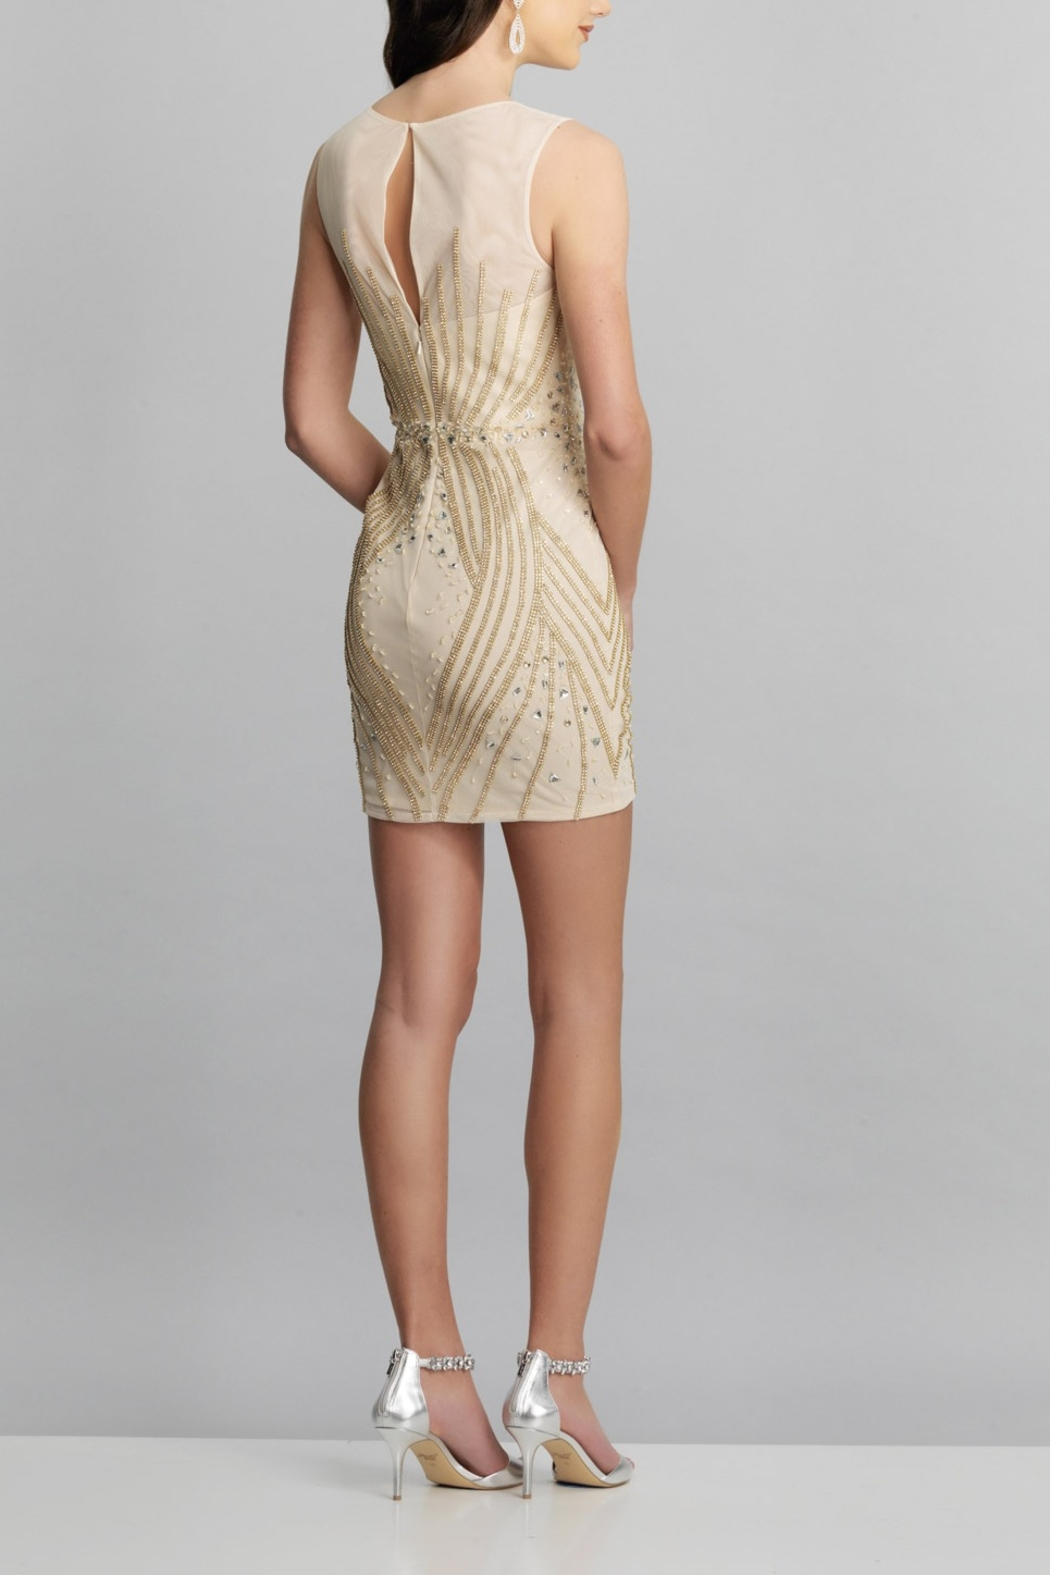 Dave and Johnny Embellished Sheath Dress - Front Full Image